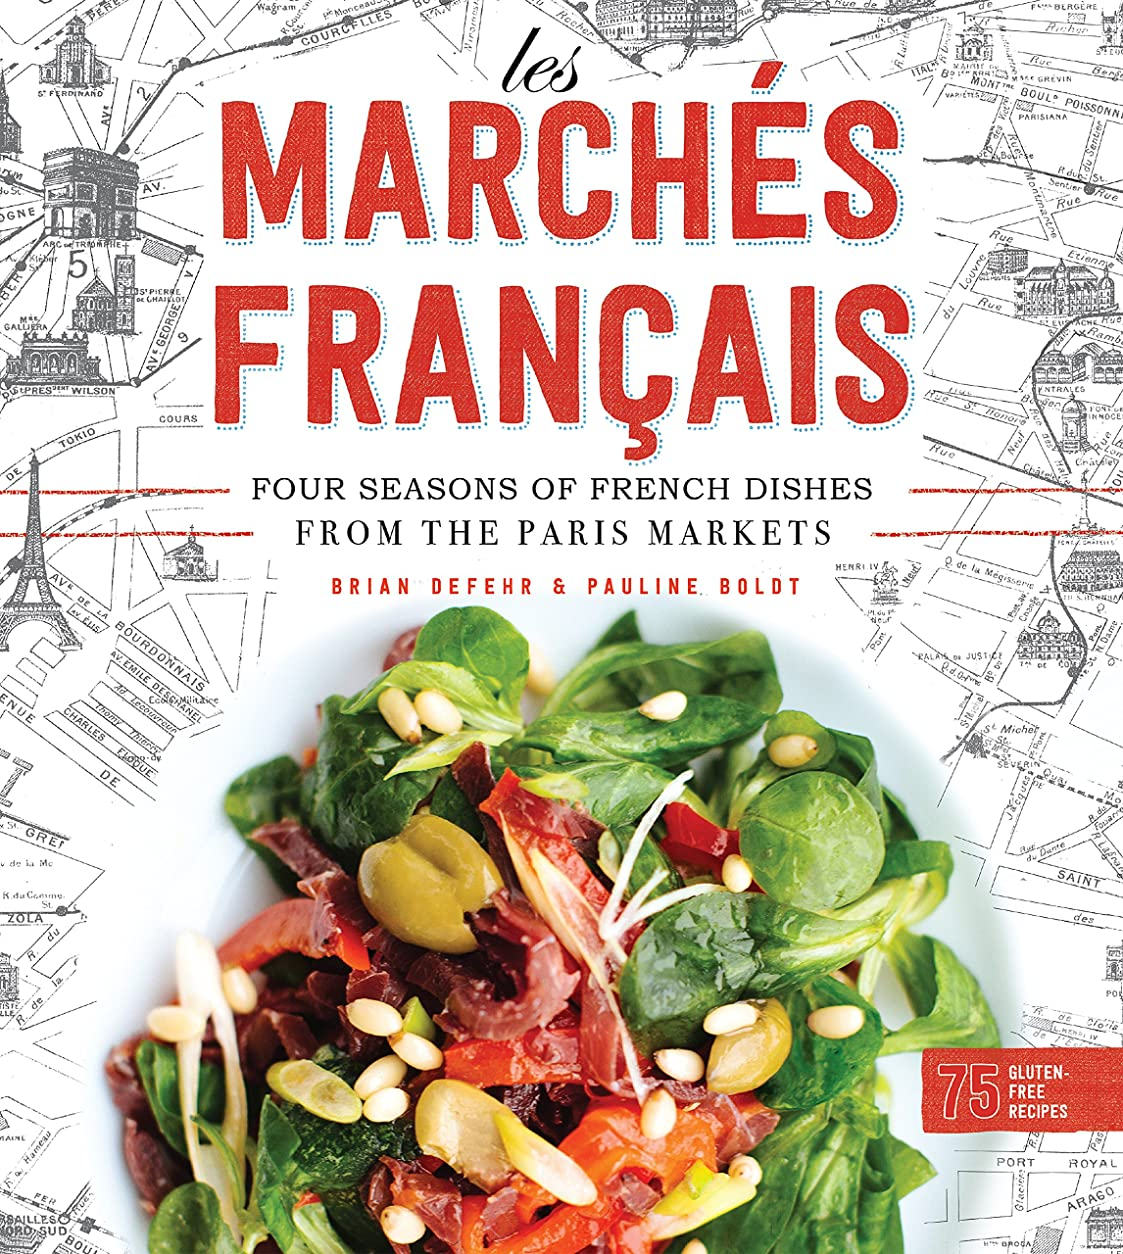 Les Marchés Francais: Four Seasons of French Dishes from the Paris Markets (English Edition)